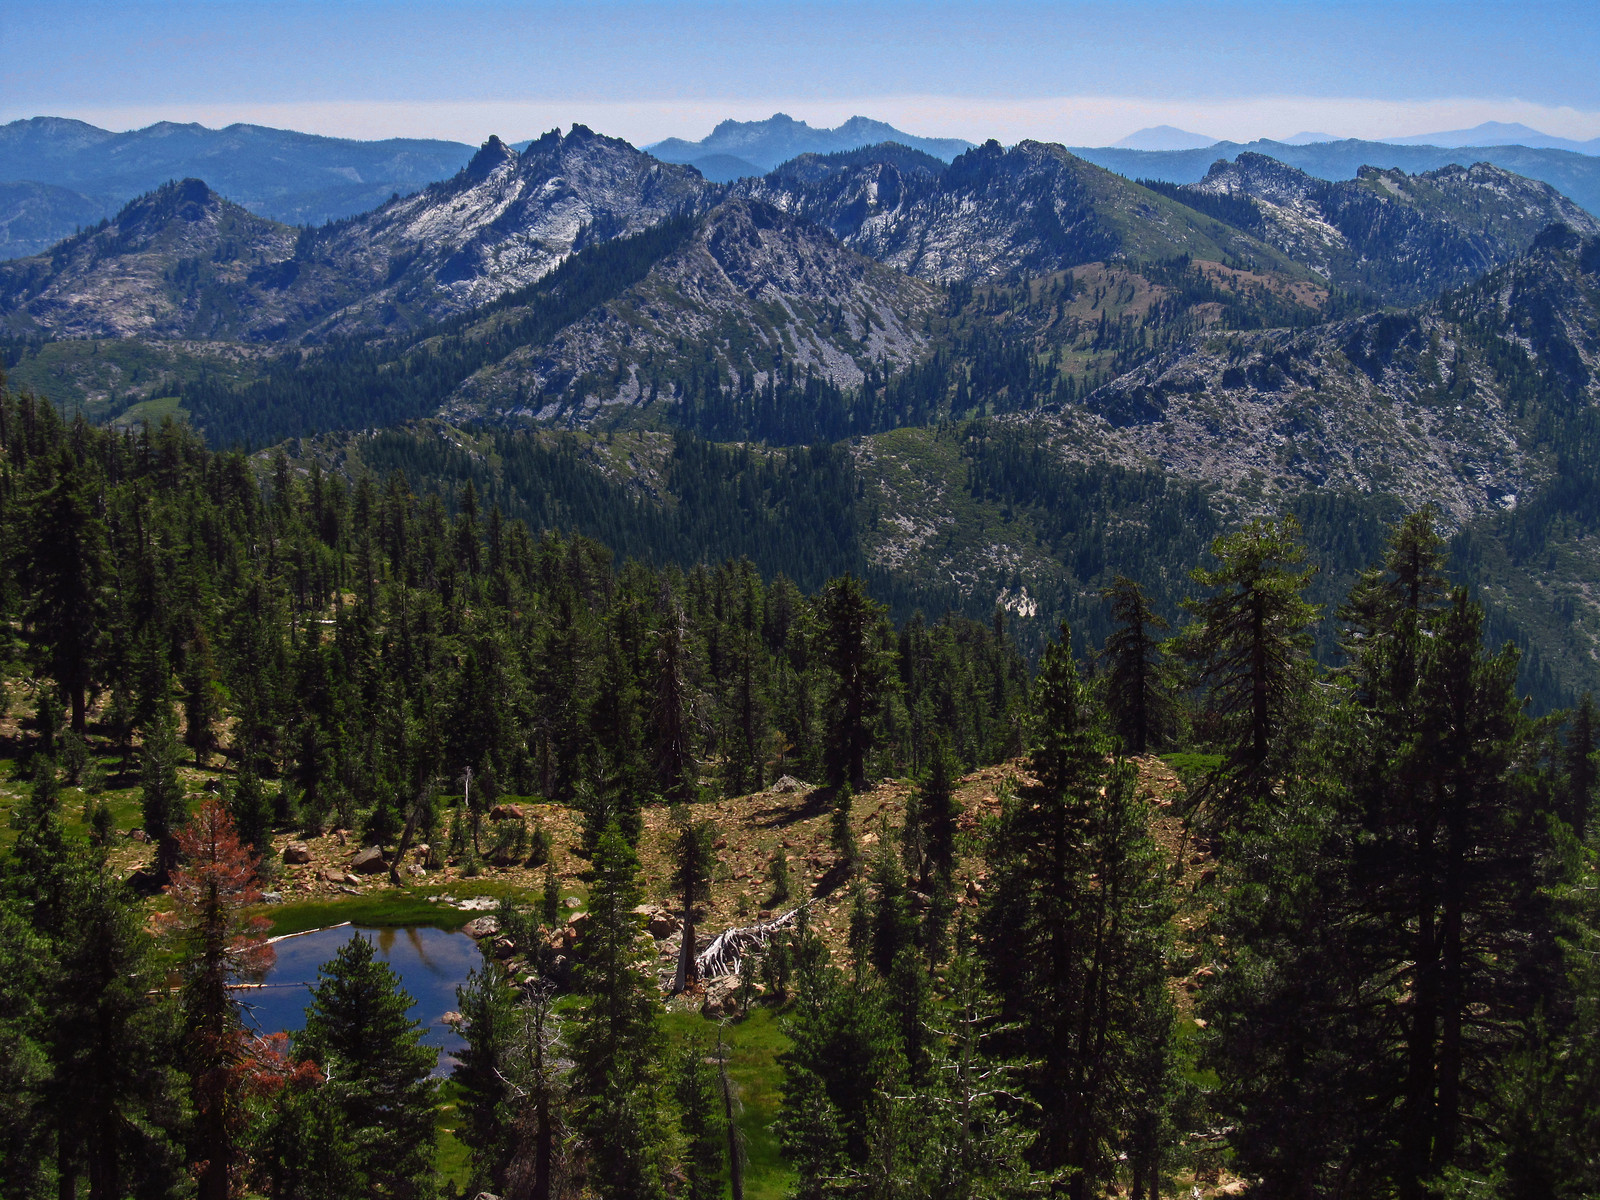 Grand views from the Pacific Crest Trail in far Northern California.